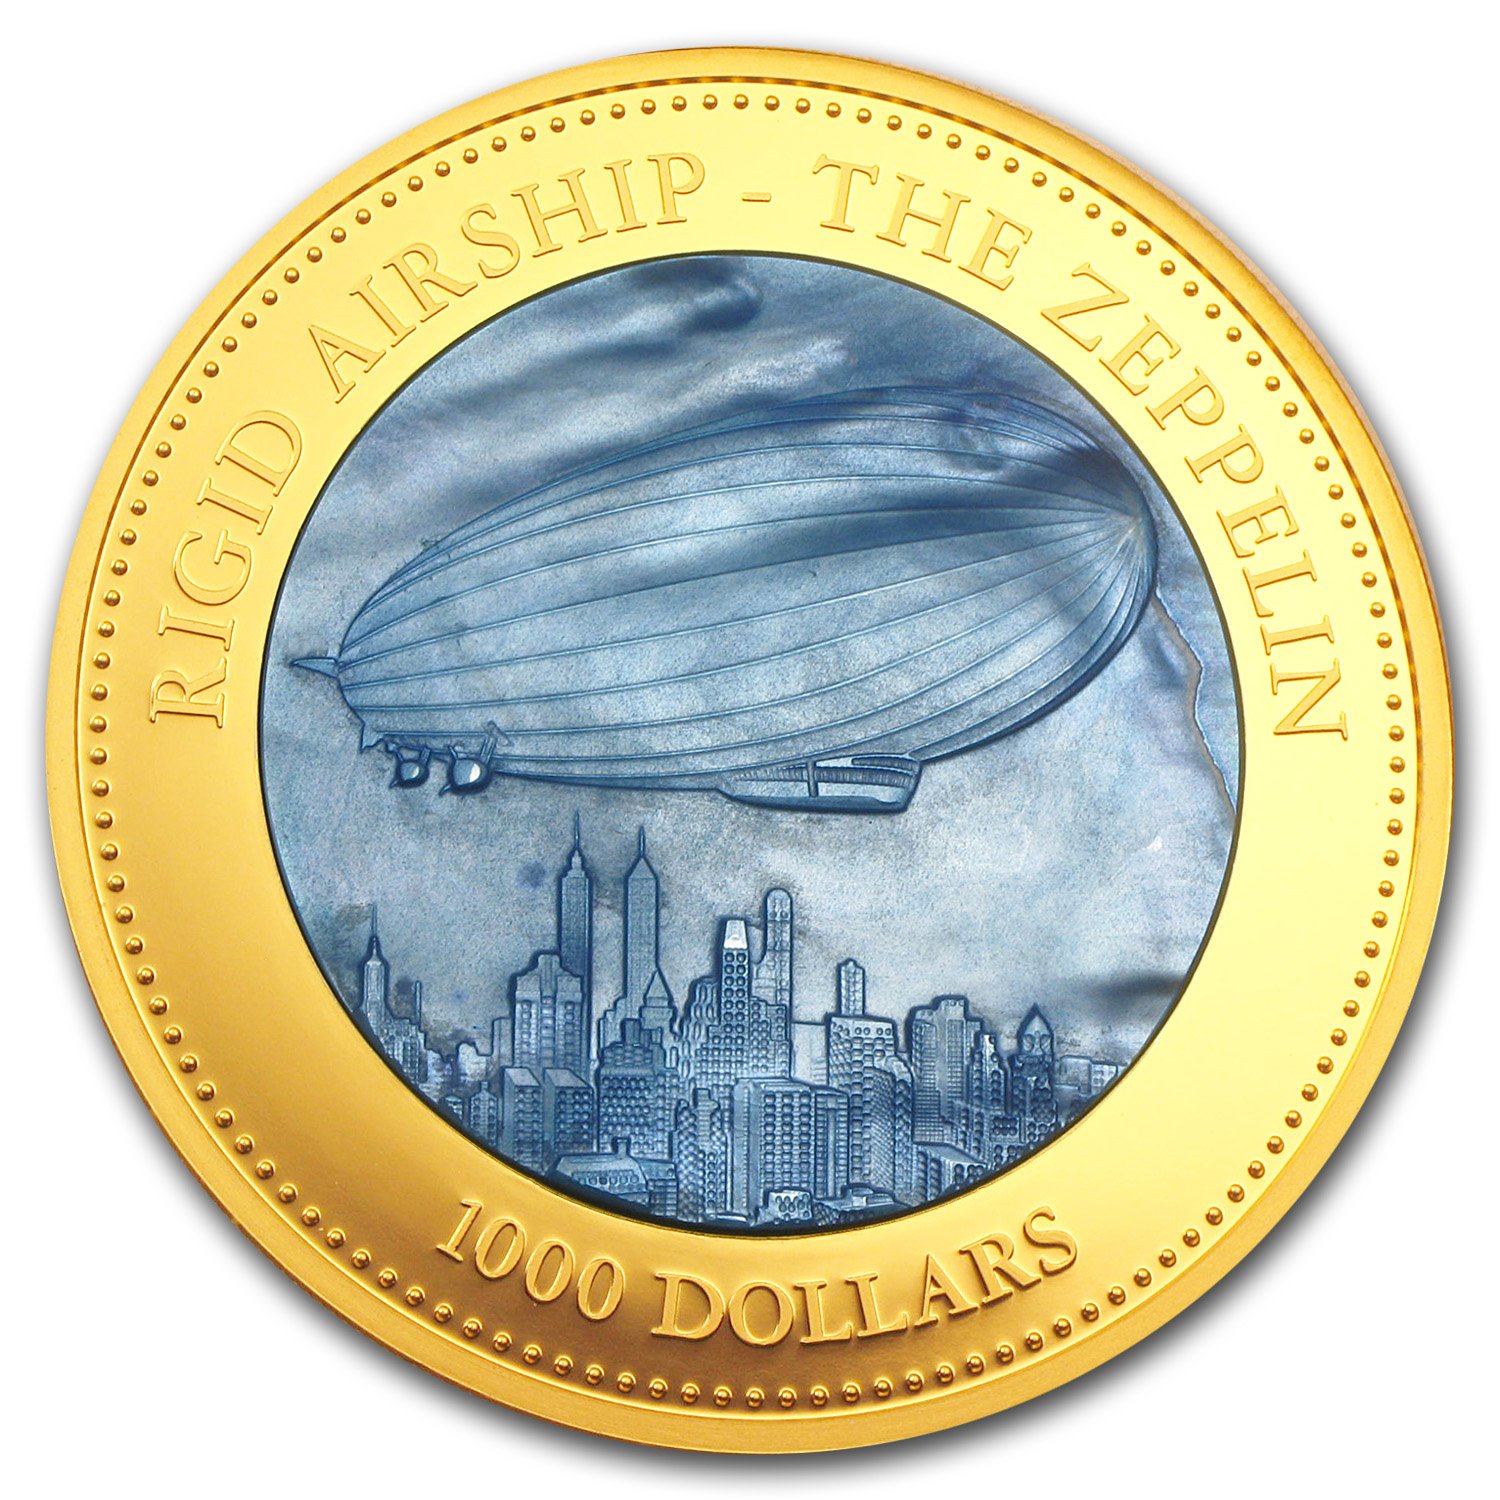 Cook Islands 2013 5 oz Gold $1,000 Mother of Pearl - Zeppelin